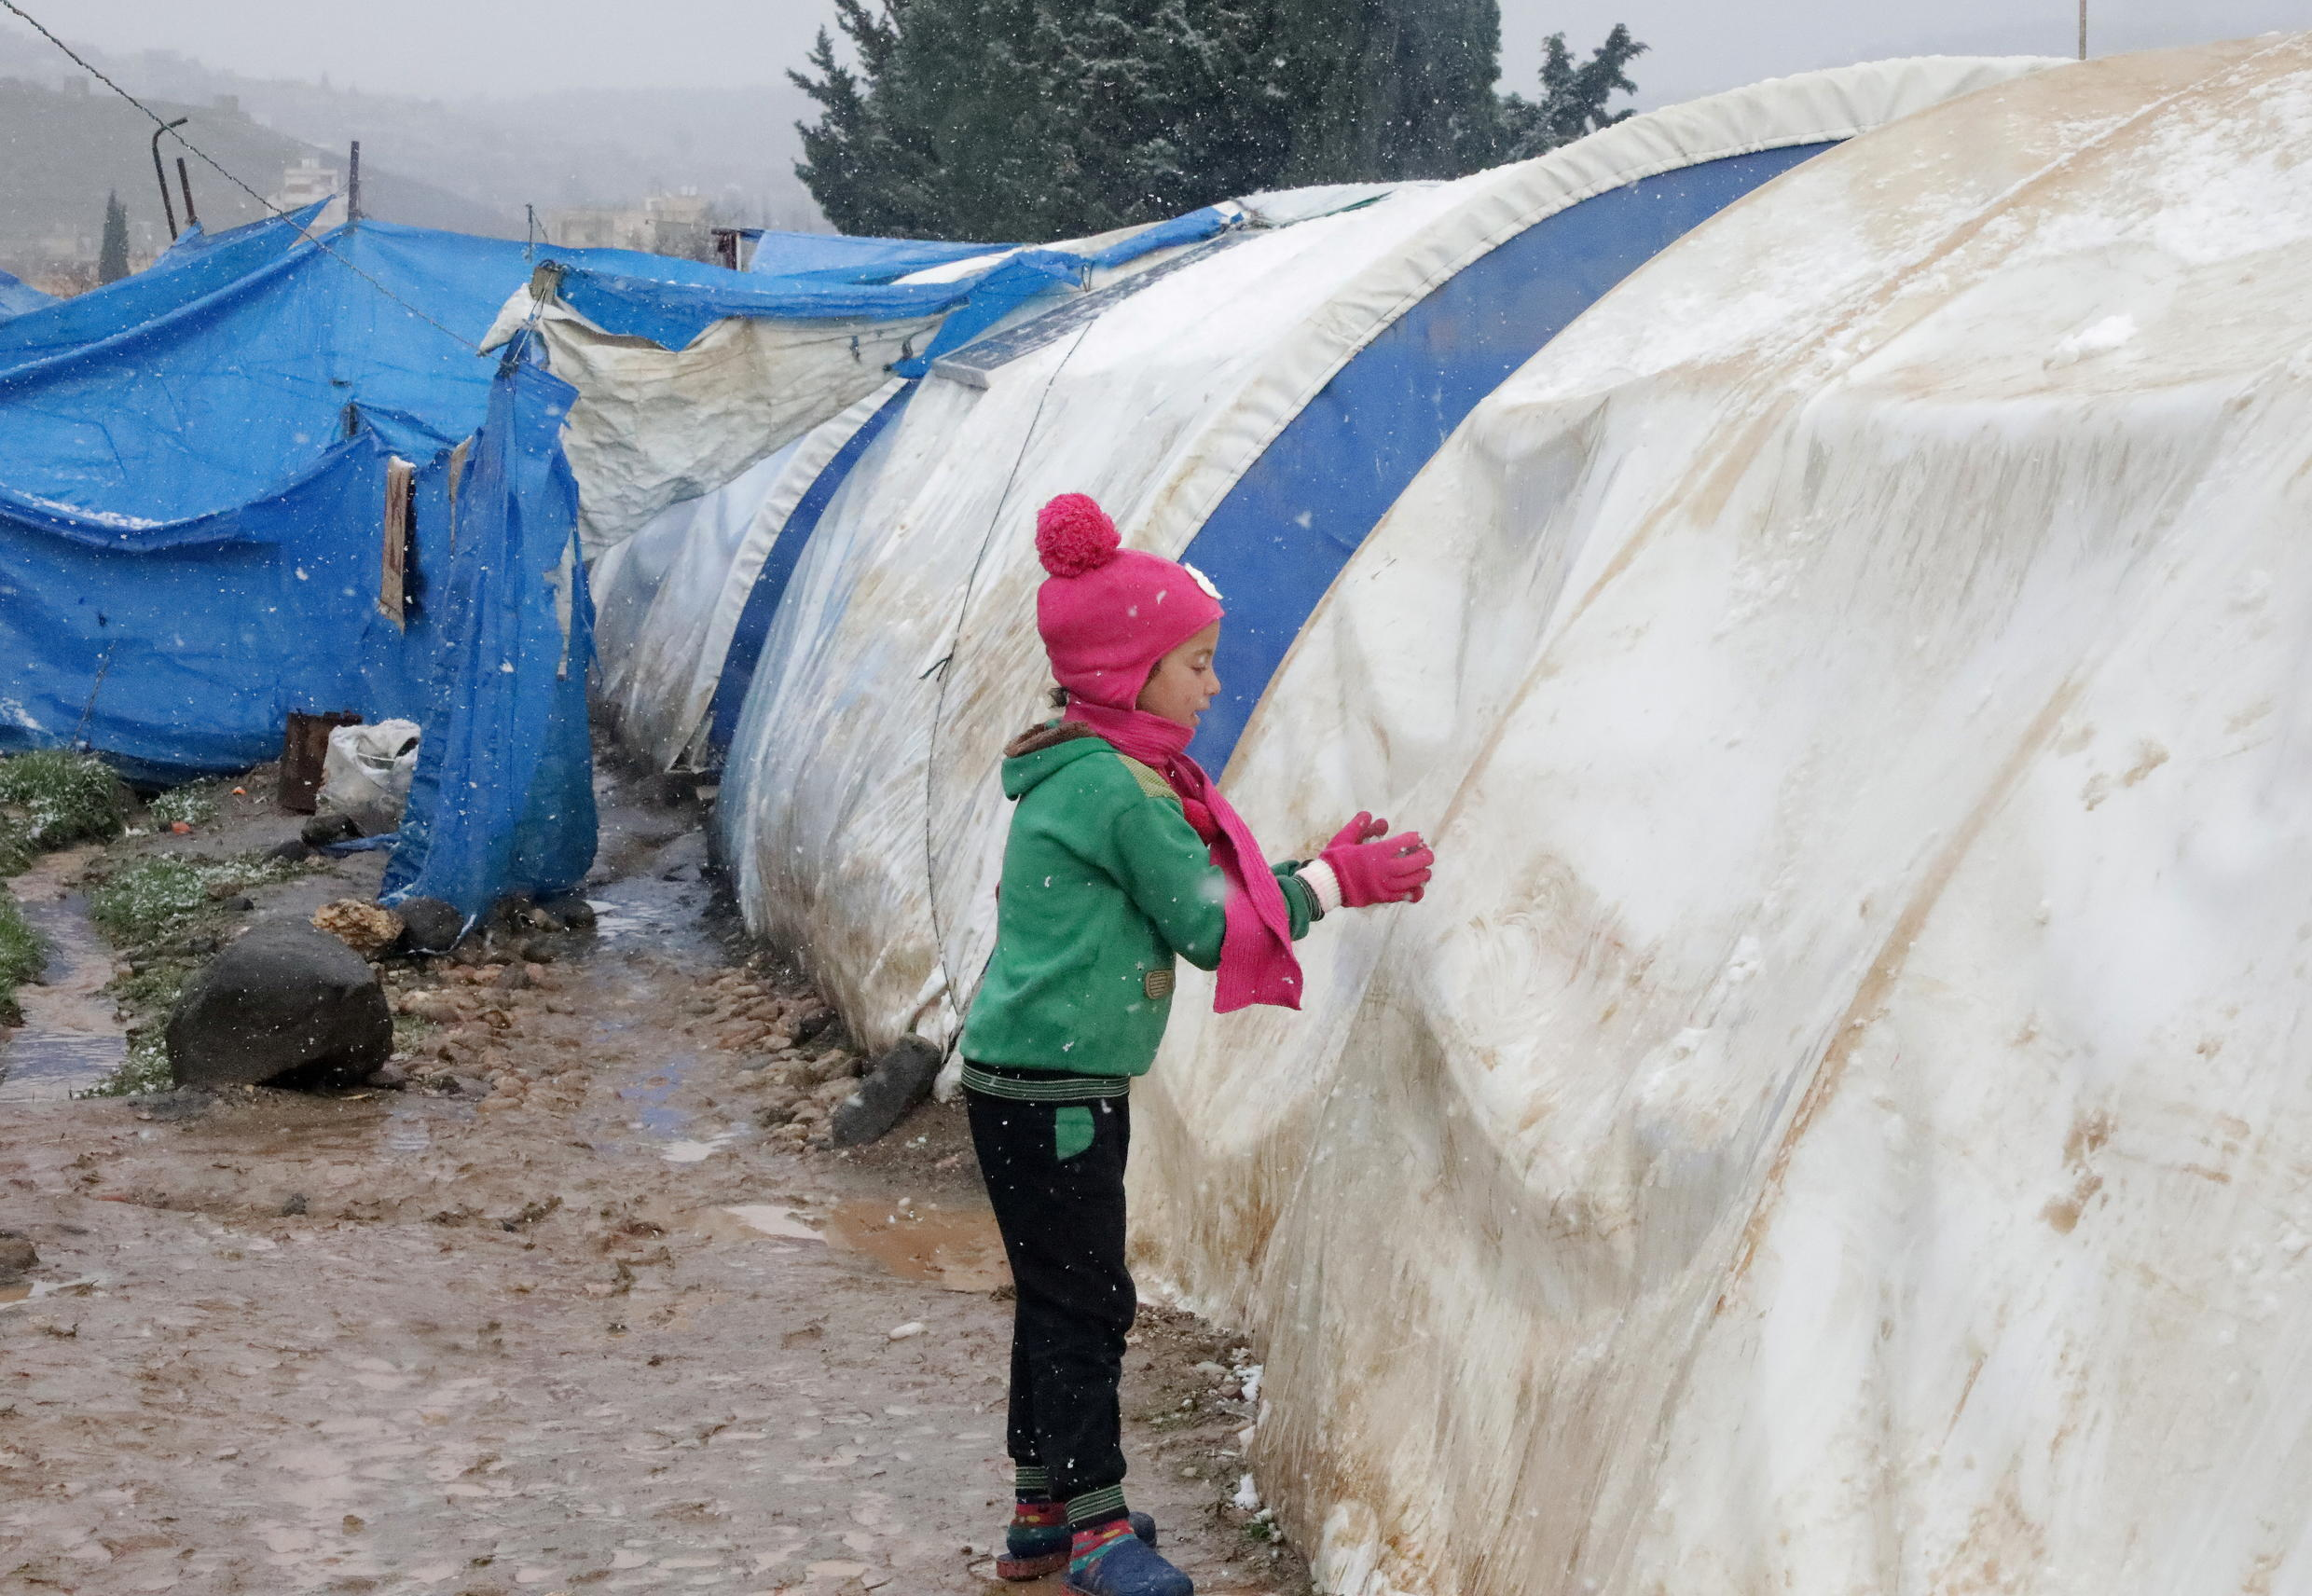 2021-01-21T121504Z_211048736_RC2CCL9IW14J_RTRMADP_3_SYRIA-WEATHER-CAMPS